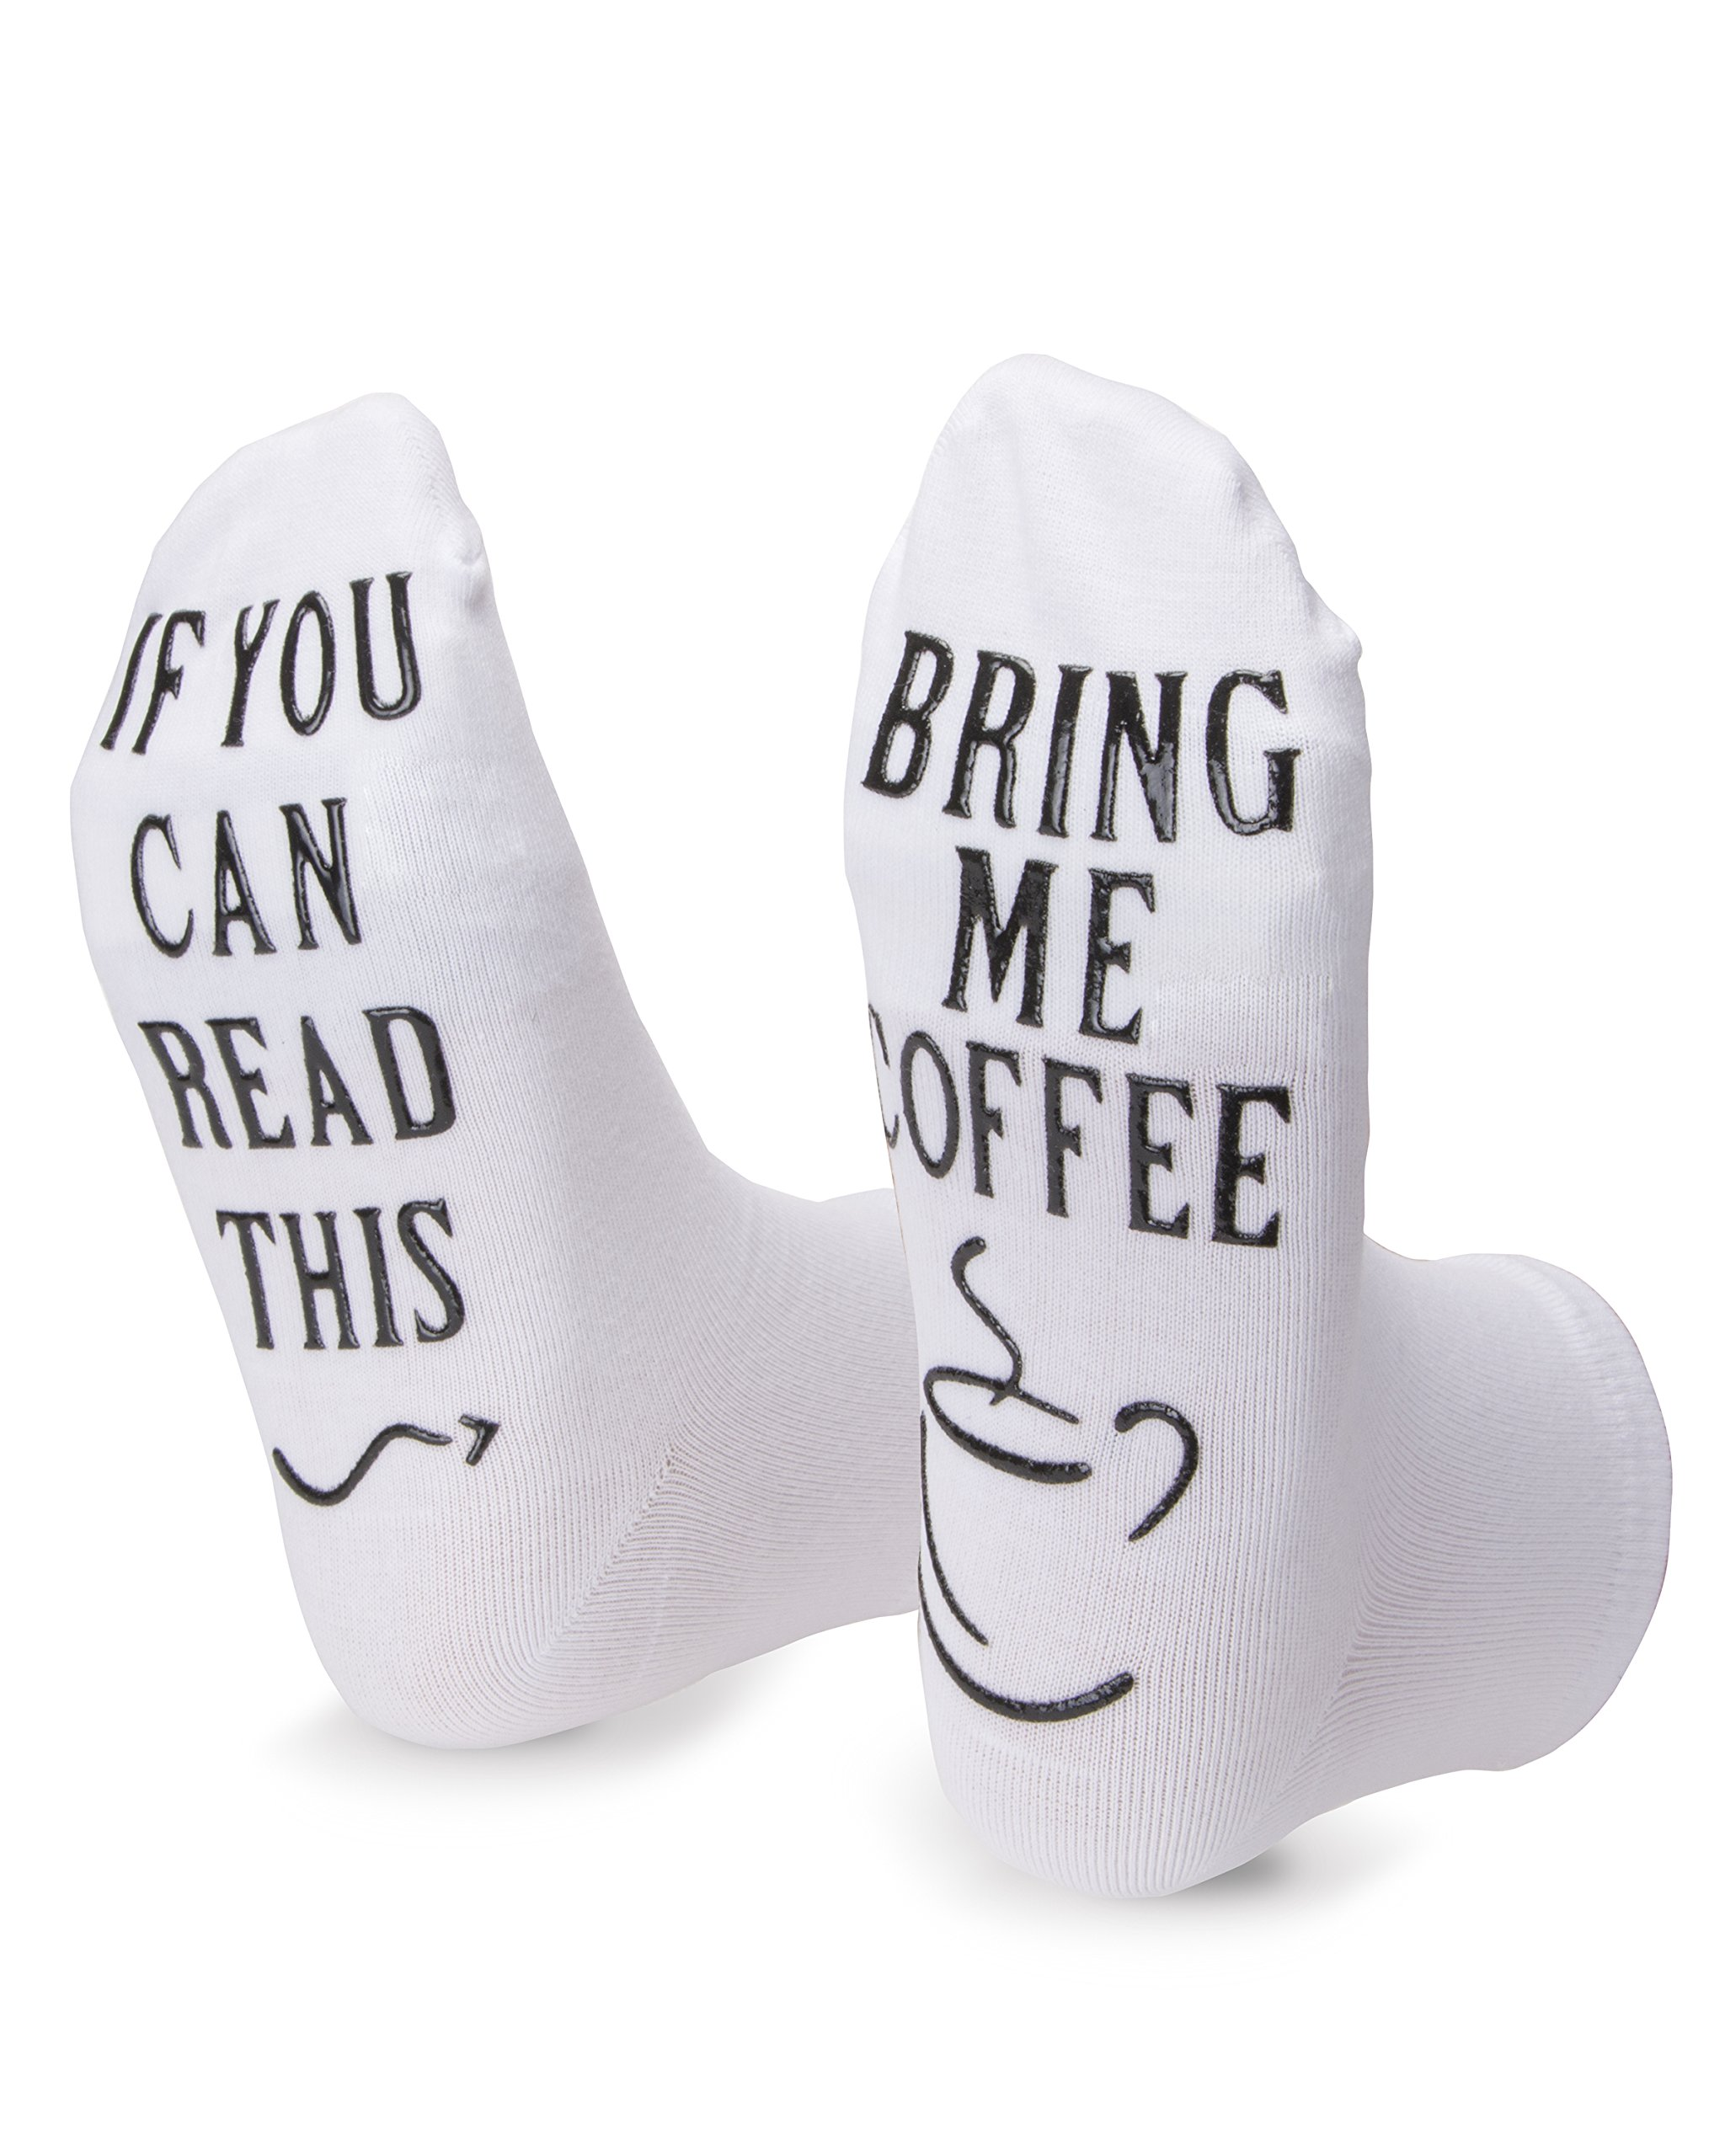 Bring Me Coffee Socks Funny Saying Novelty Birthday Present For Him Or Her Gift Idea For Husband, Wife, Sister, Best Friend, Coffee Lover